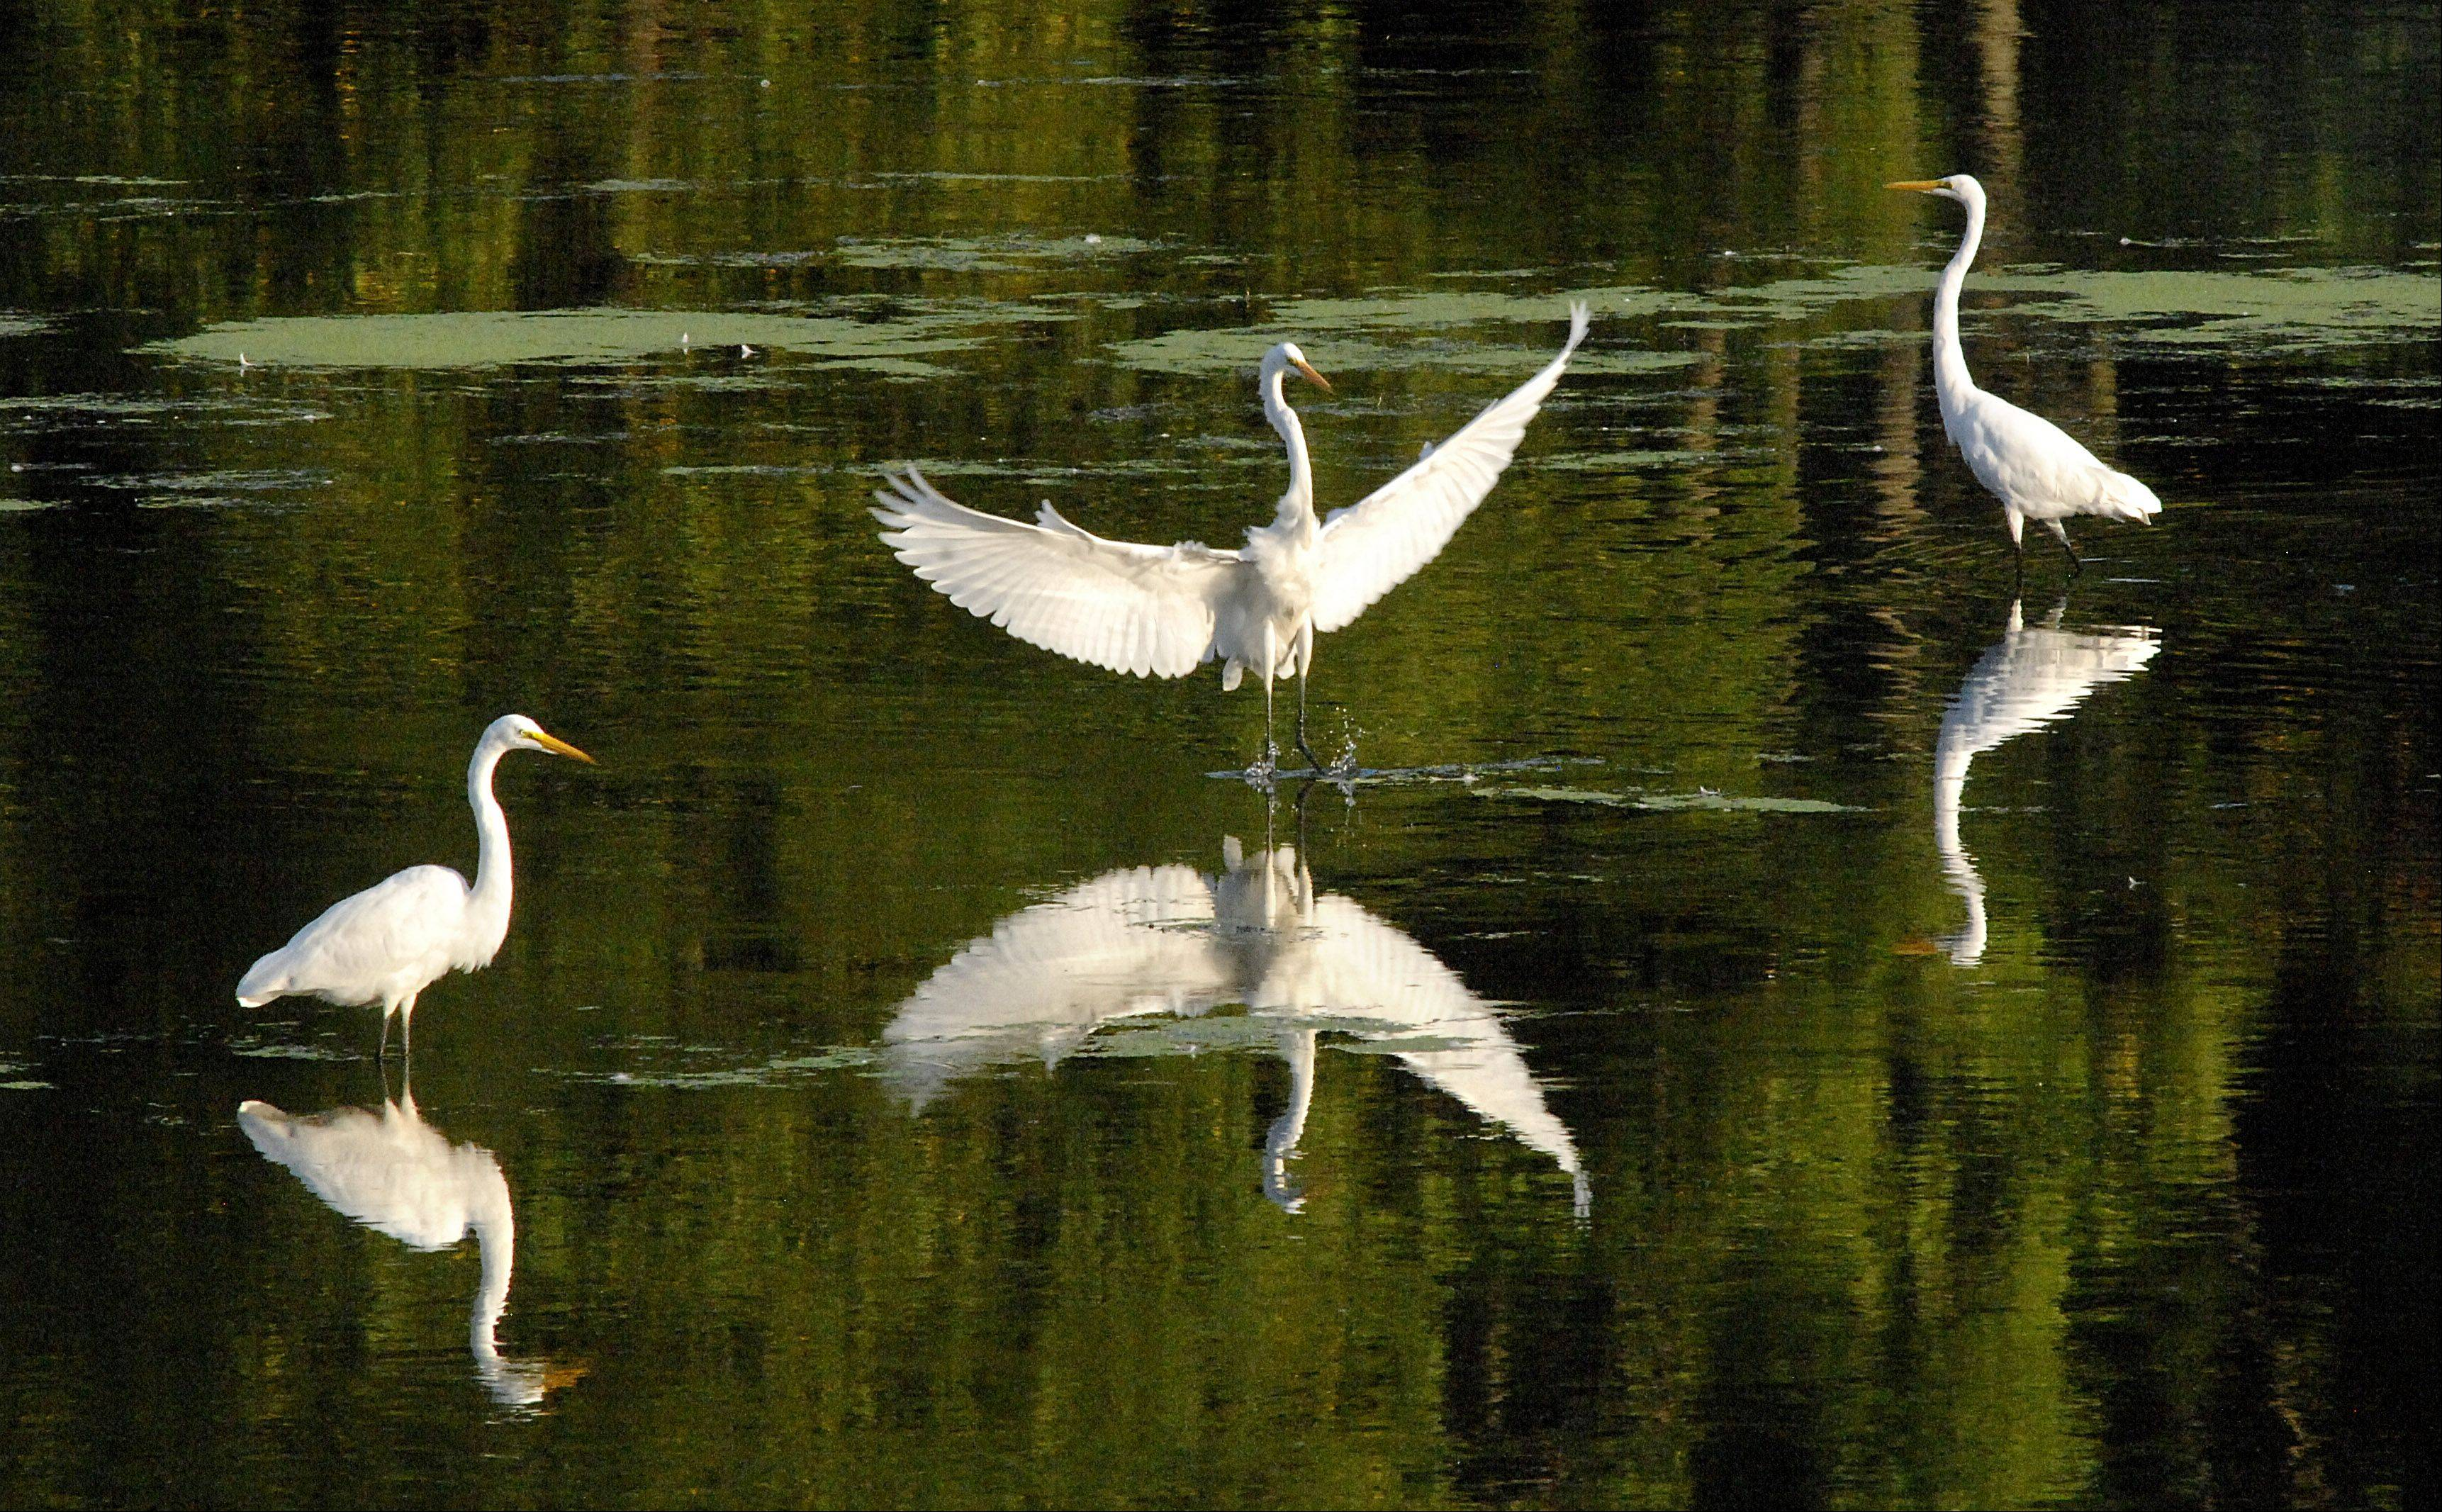 Laura Stoecker/lstoecker@dailyherald.comAn egret flies in to form a cluster of the water-wading birds near Tekakwitha Woods in St. Charles at sunset. Low water levels have great egrets and great blue herons gathering in large groups to feed.